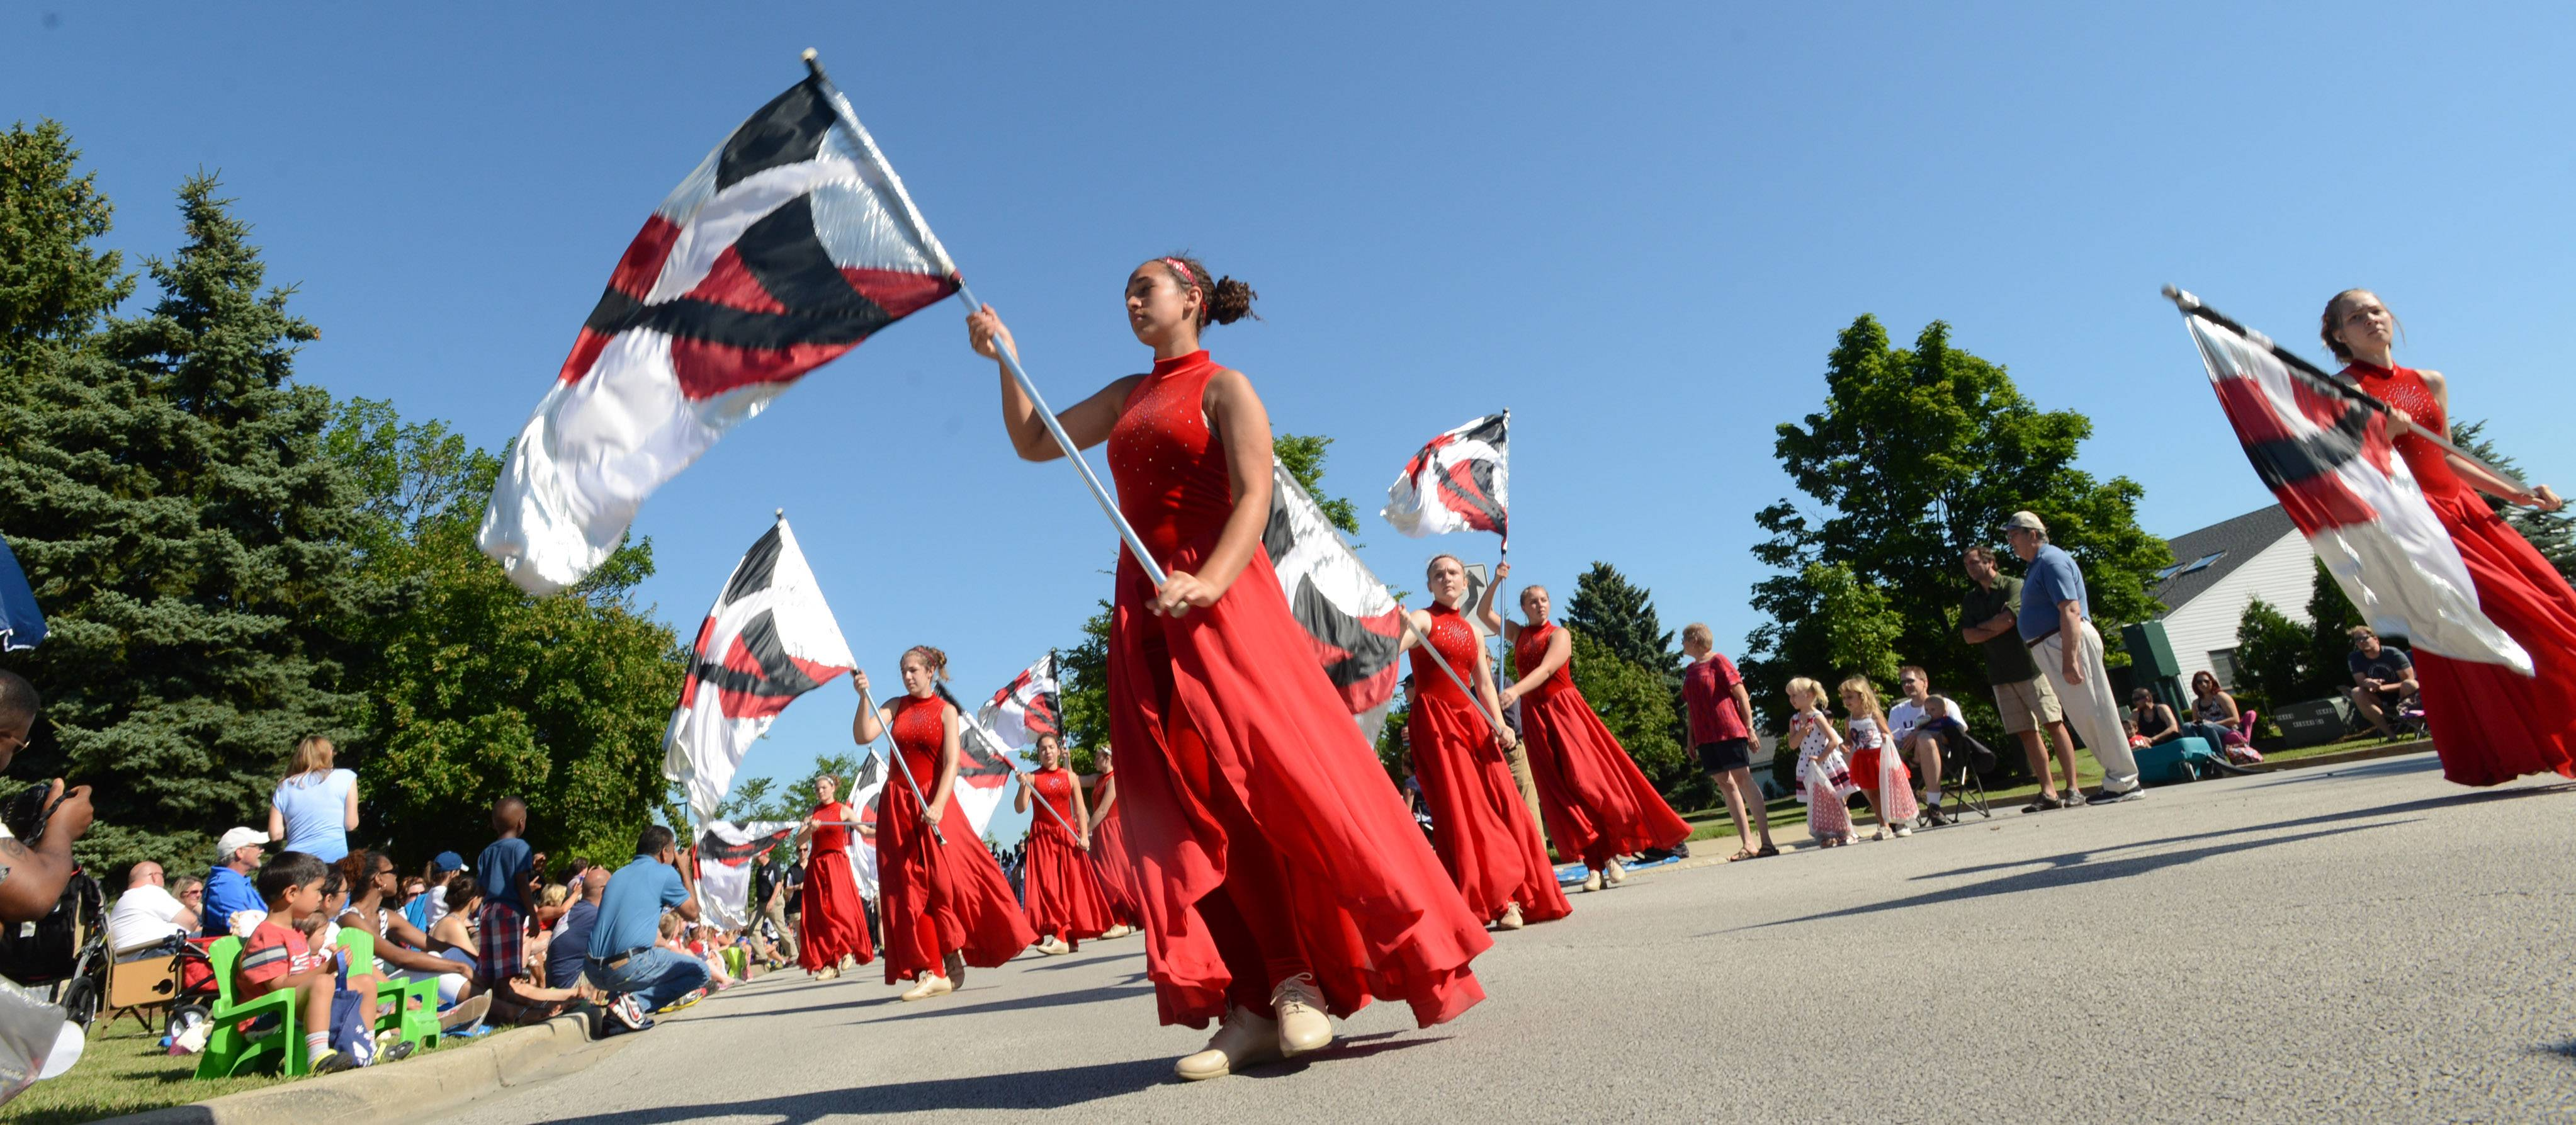 The Band of the Black Watch from Kenosha, Wis. march in Friday's Fourth of July parade in Vernon Hills.